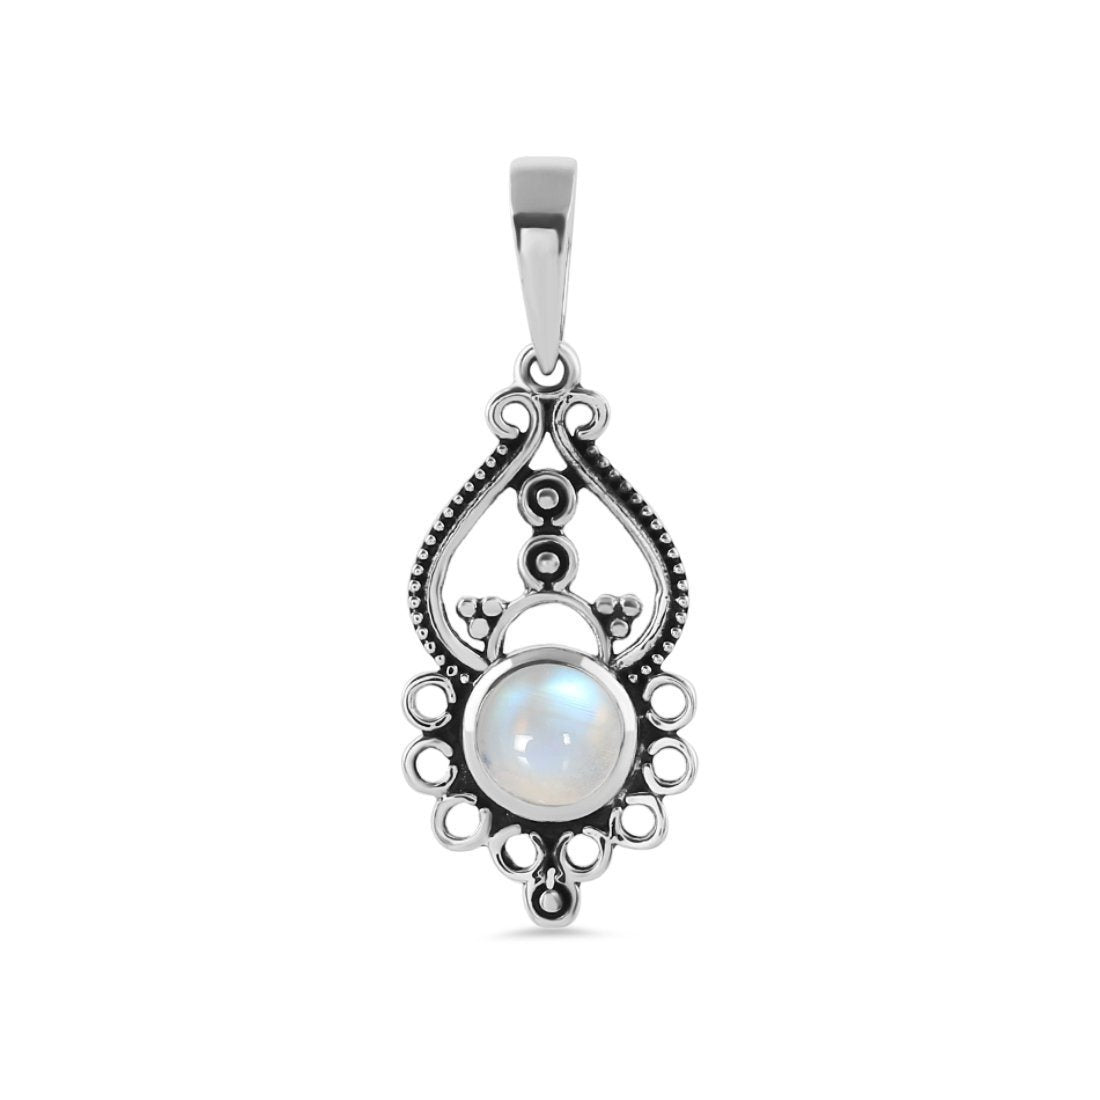 Moonstone Pendant-Silent Passion Sale Item 925 SILVER & MOONSTONE